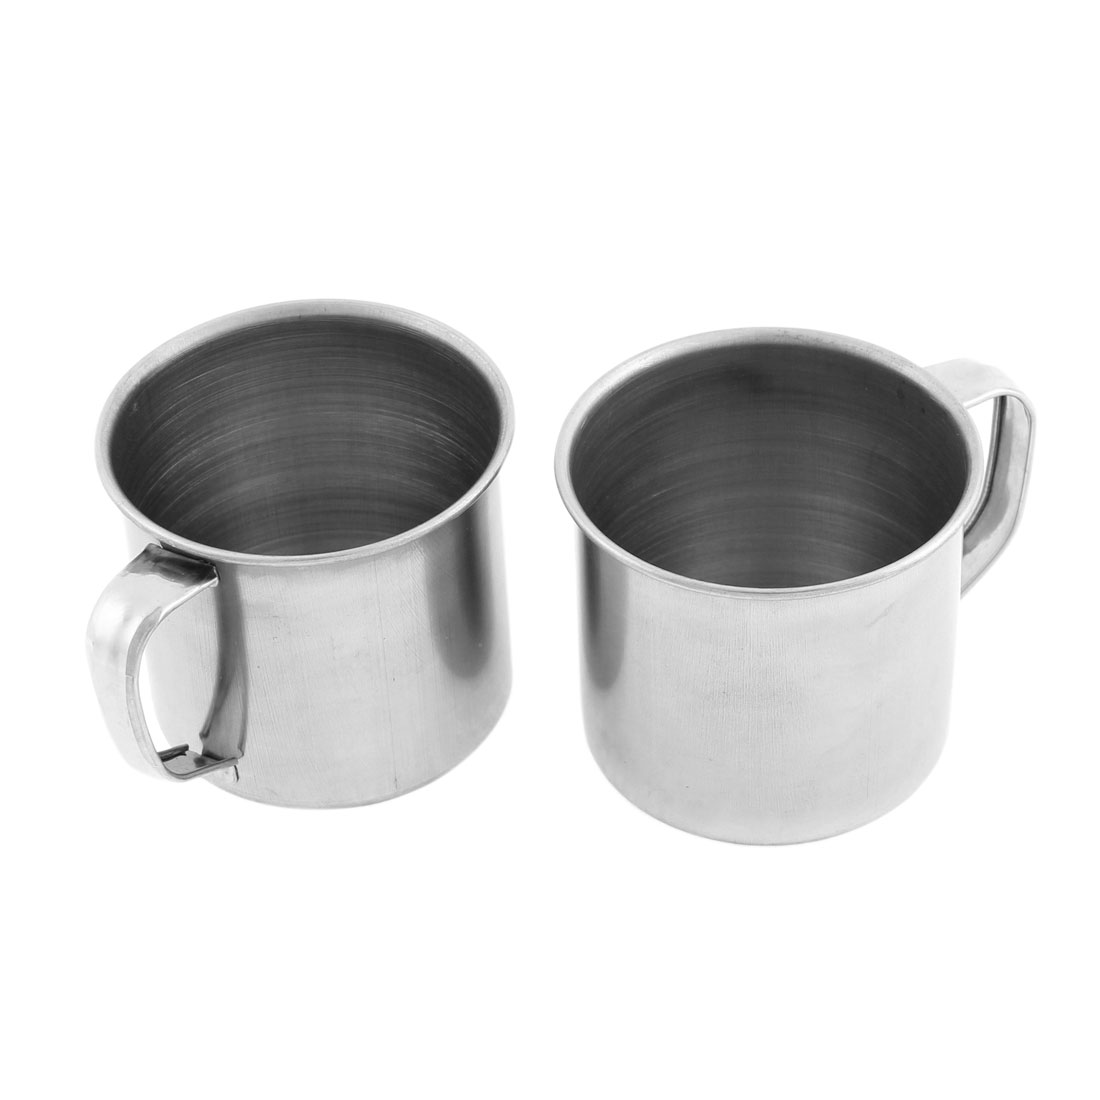 Home Office Stainless Steel Lidless Water Cup Drink Mug Sliver Tone 6cm Height 2 Pcs